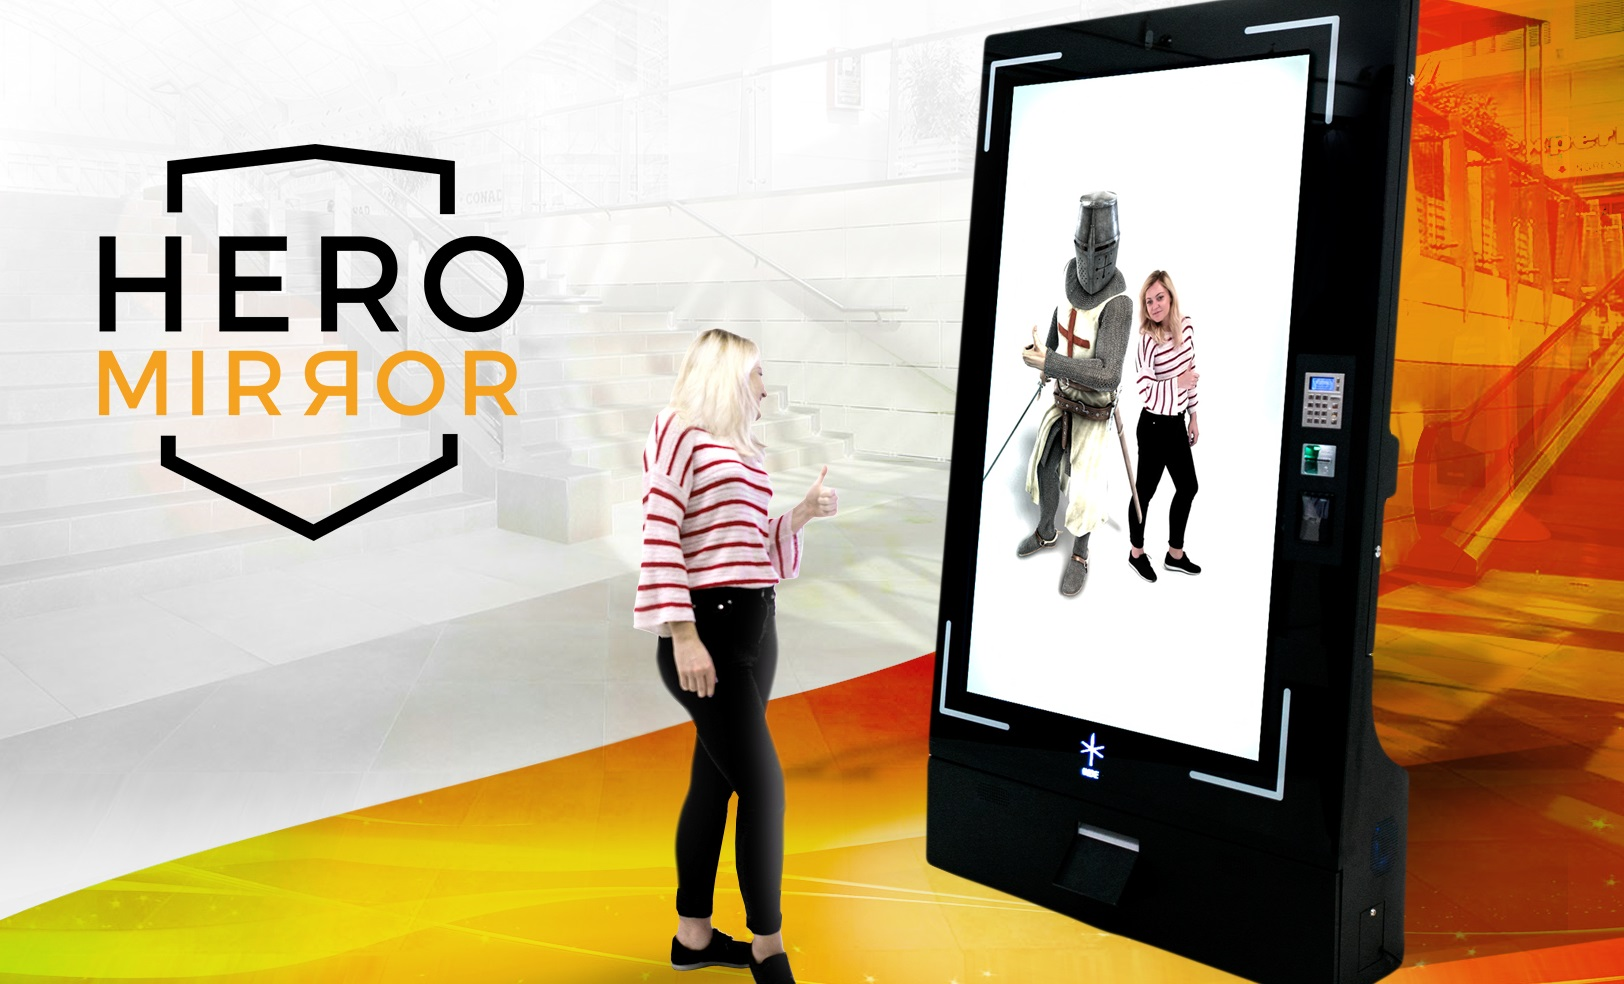 HeroMirror – A standalone Augmented Reality photo booth